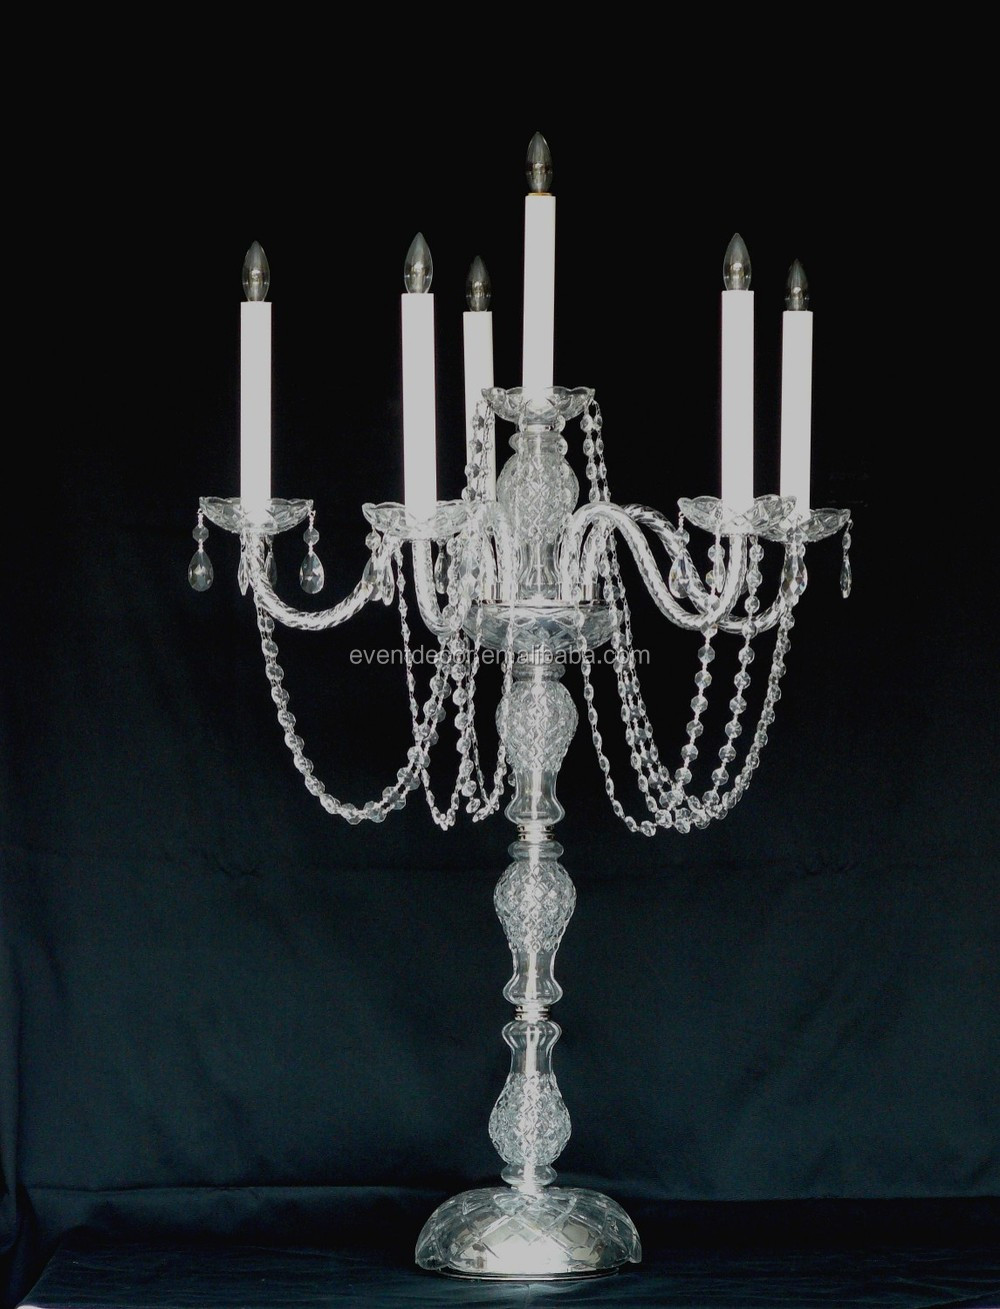 Unique Glass Candelabra , Tall Wedding Table Candelabra Centerpieces